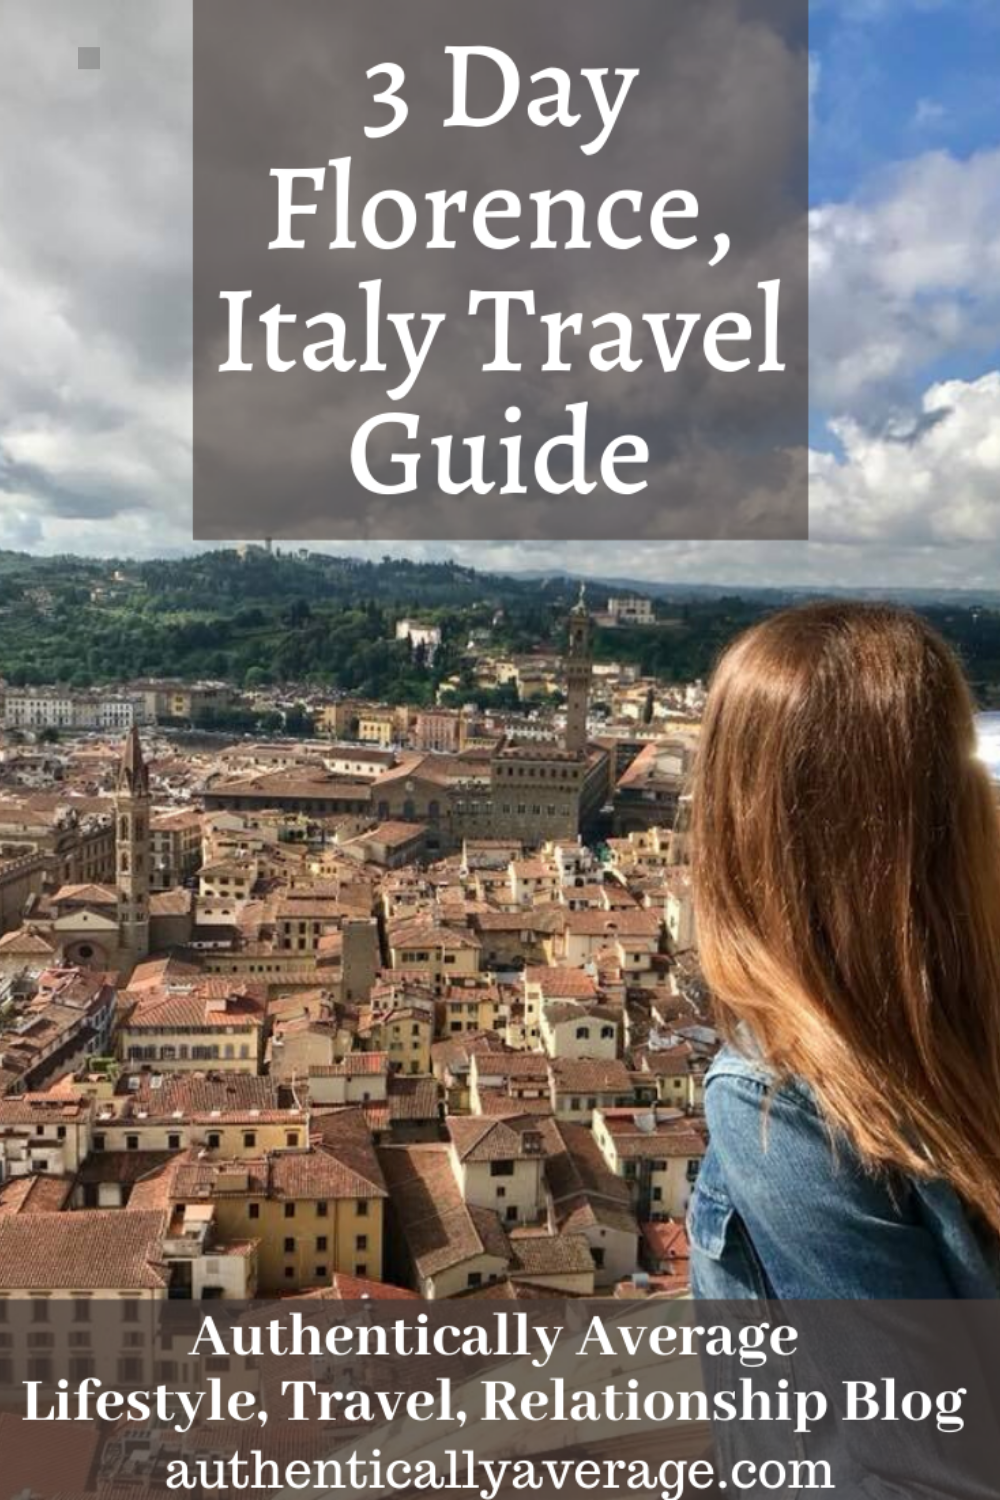 Florence is absolutely beautiful and full of must-sees, from the Duomo and Galleria to hole-in-the-wall gelaterias and markets. If you're looking to add a great stop to your Italy travel adventure, check out this 3 day guide full of the best stops in the city and plan your trip! #Florence #italy #travel #europetravel #florenceitaly #travelbug #guide #travelguide